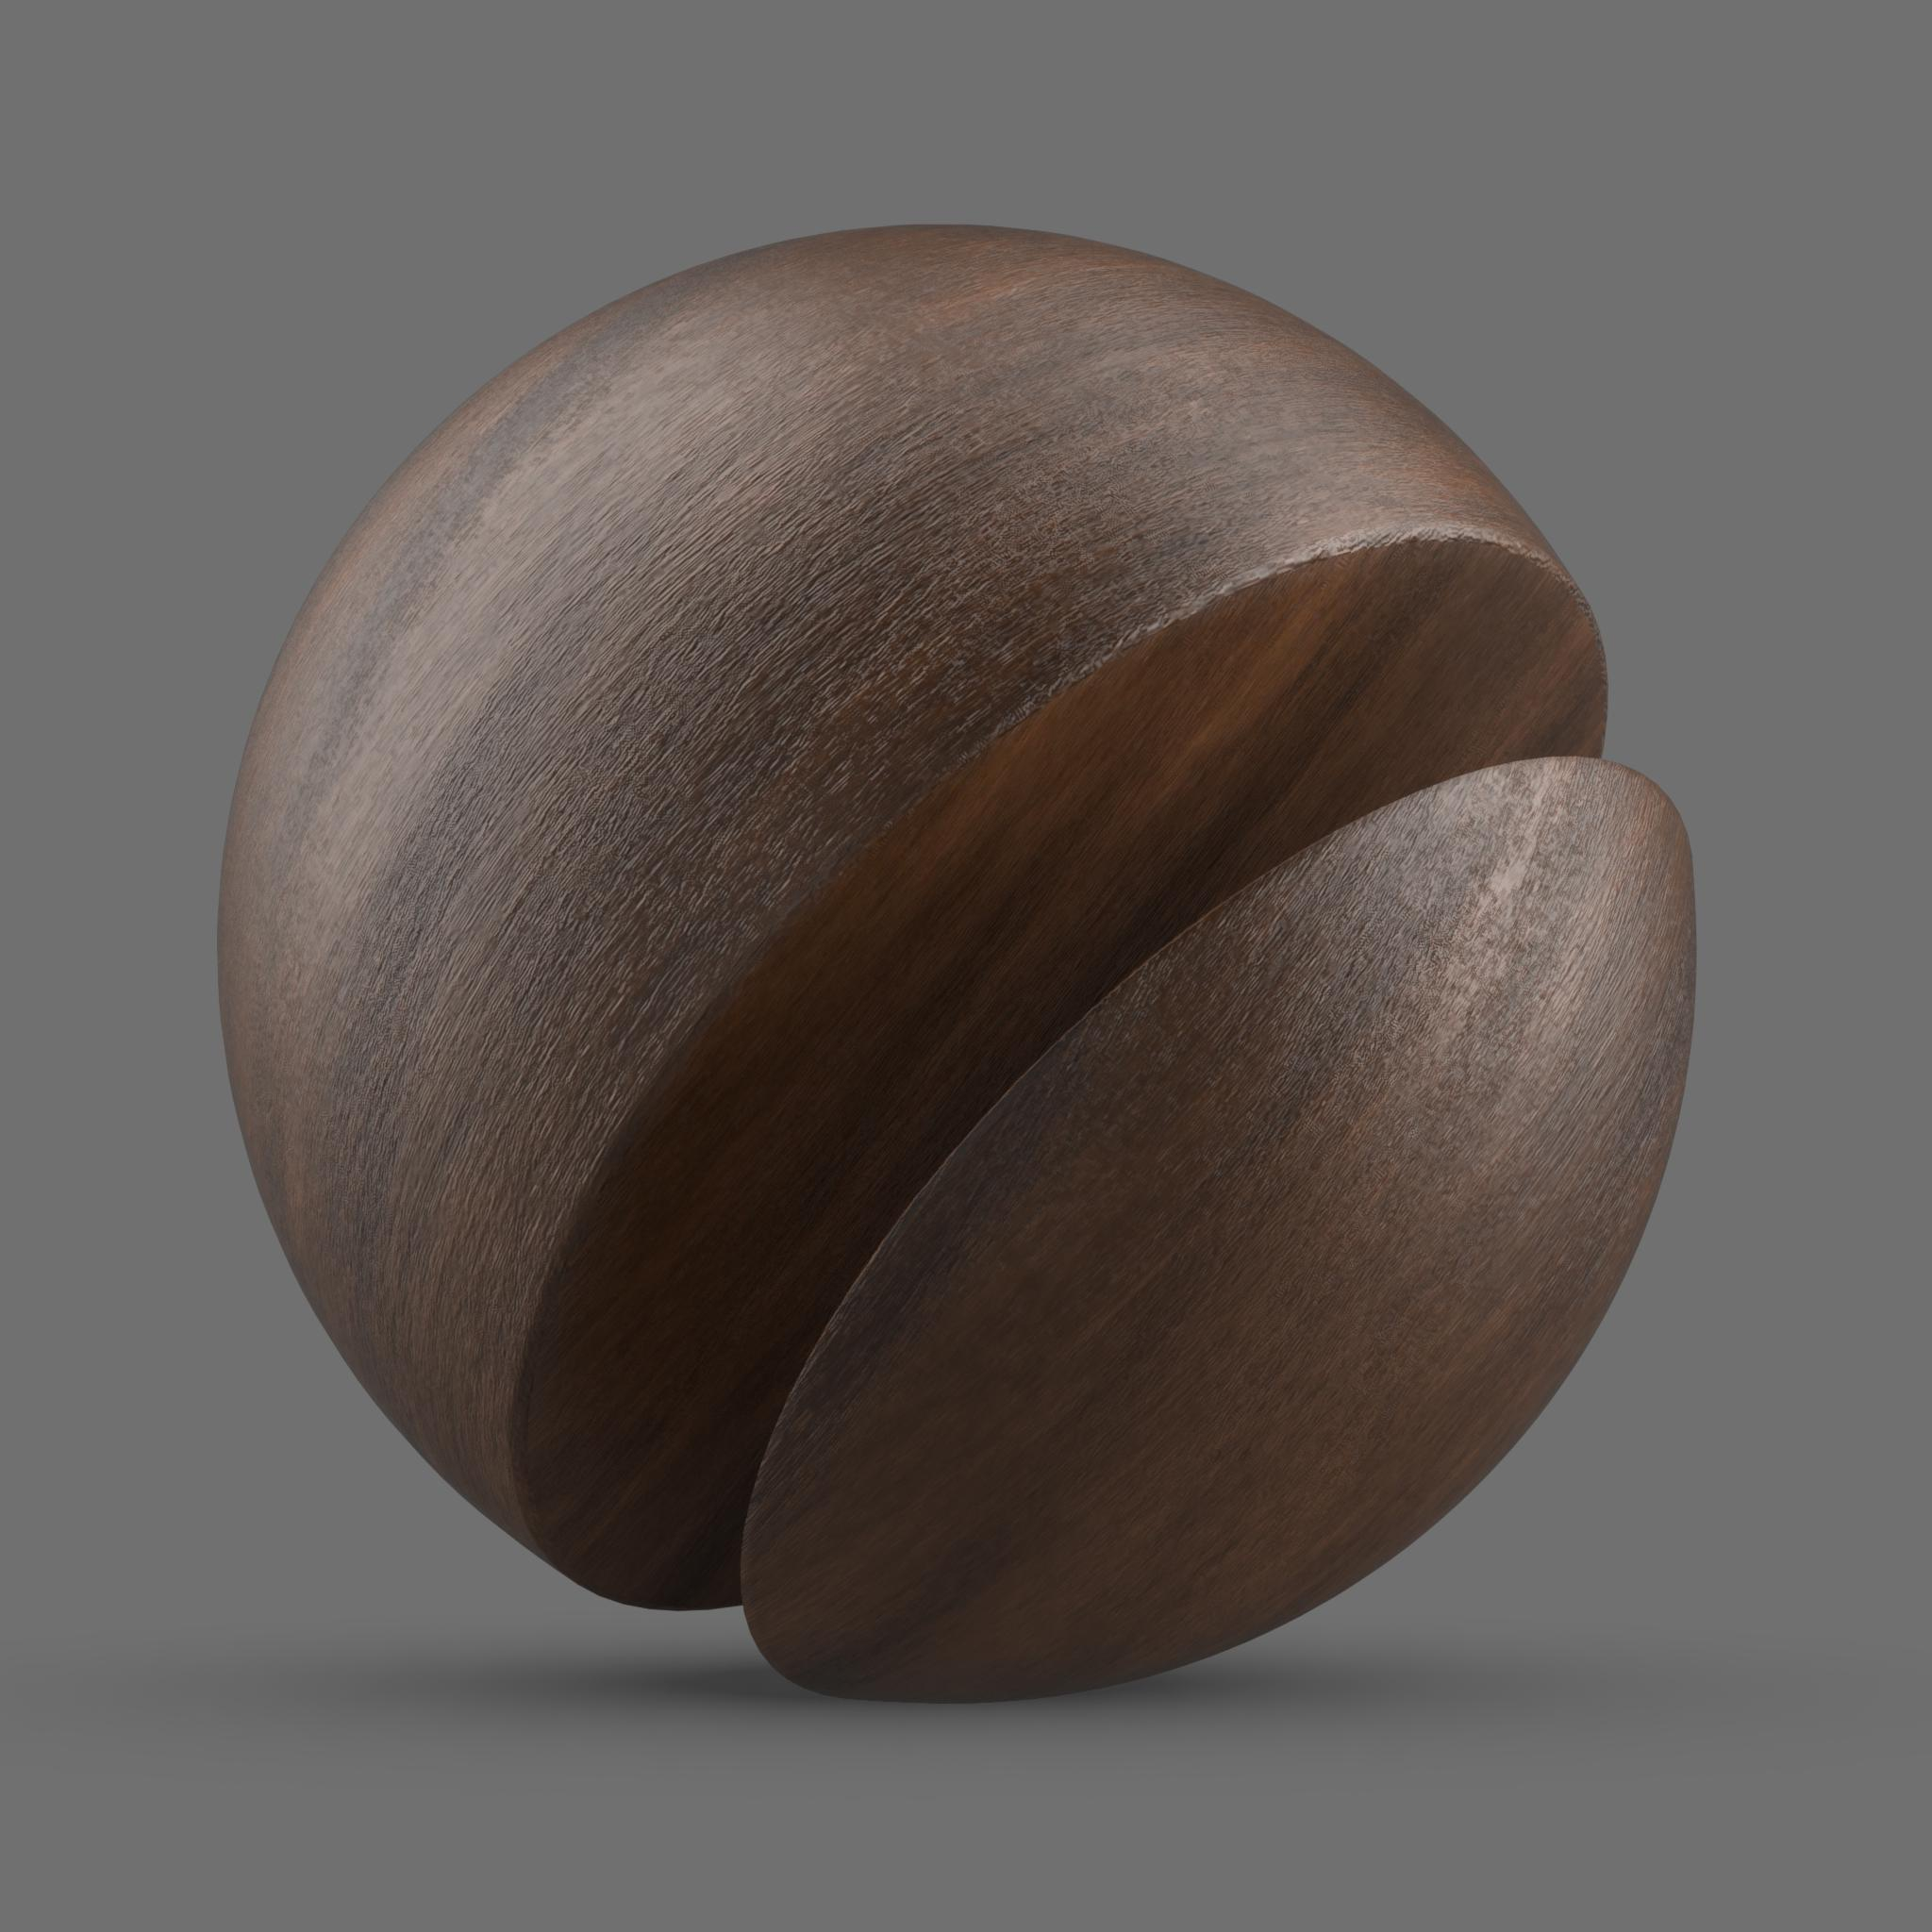 All about 3D Materials: Wood | Adobe Blog